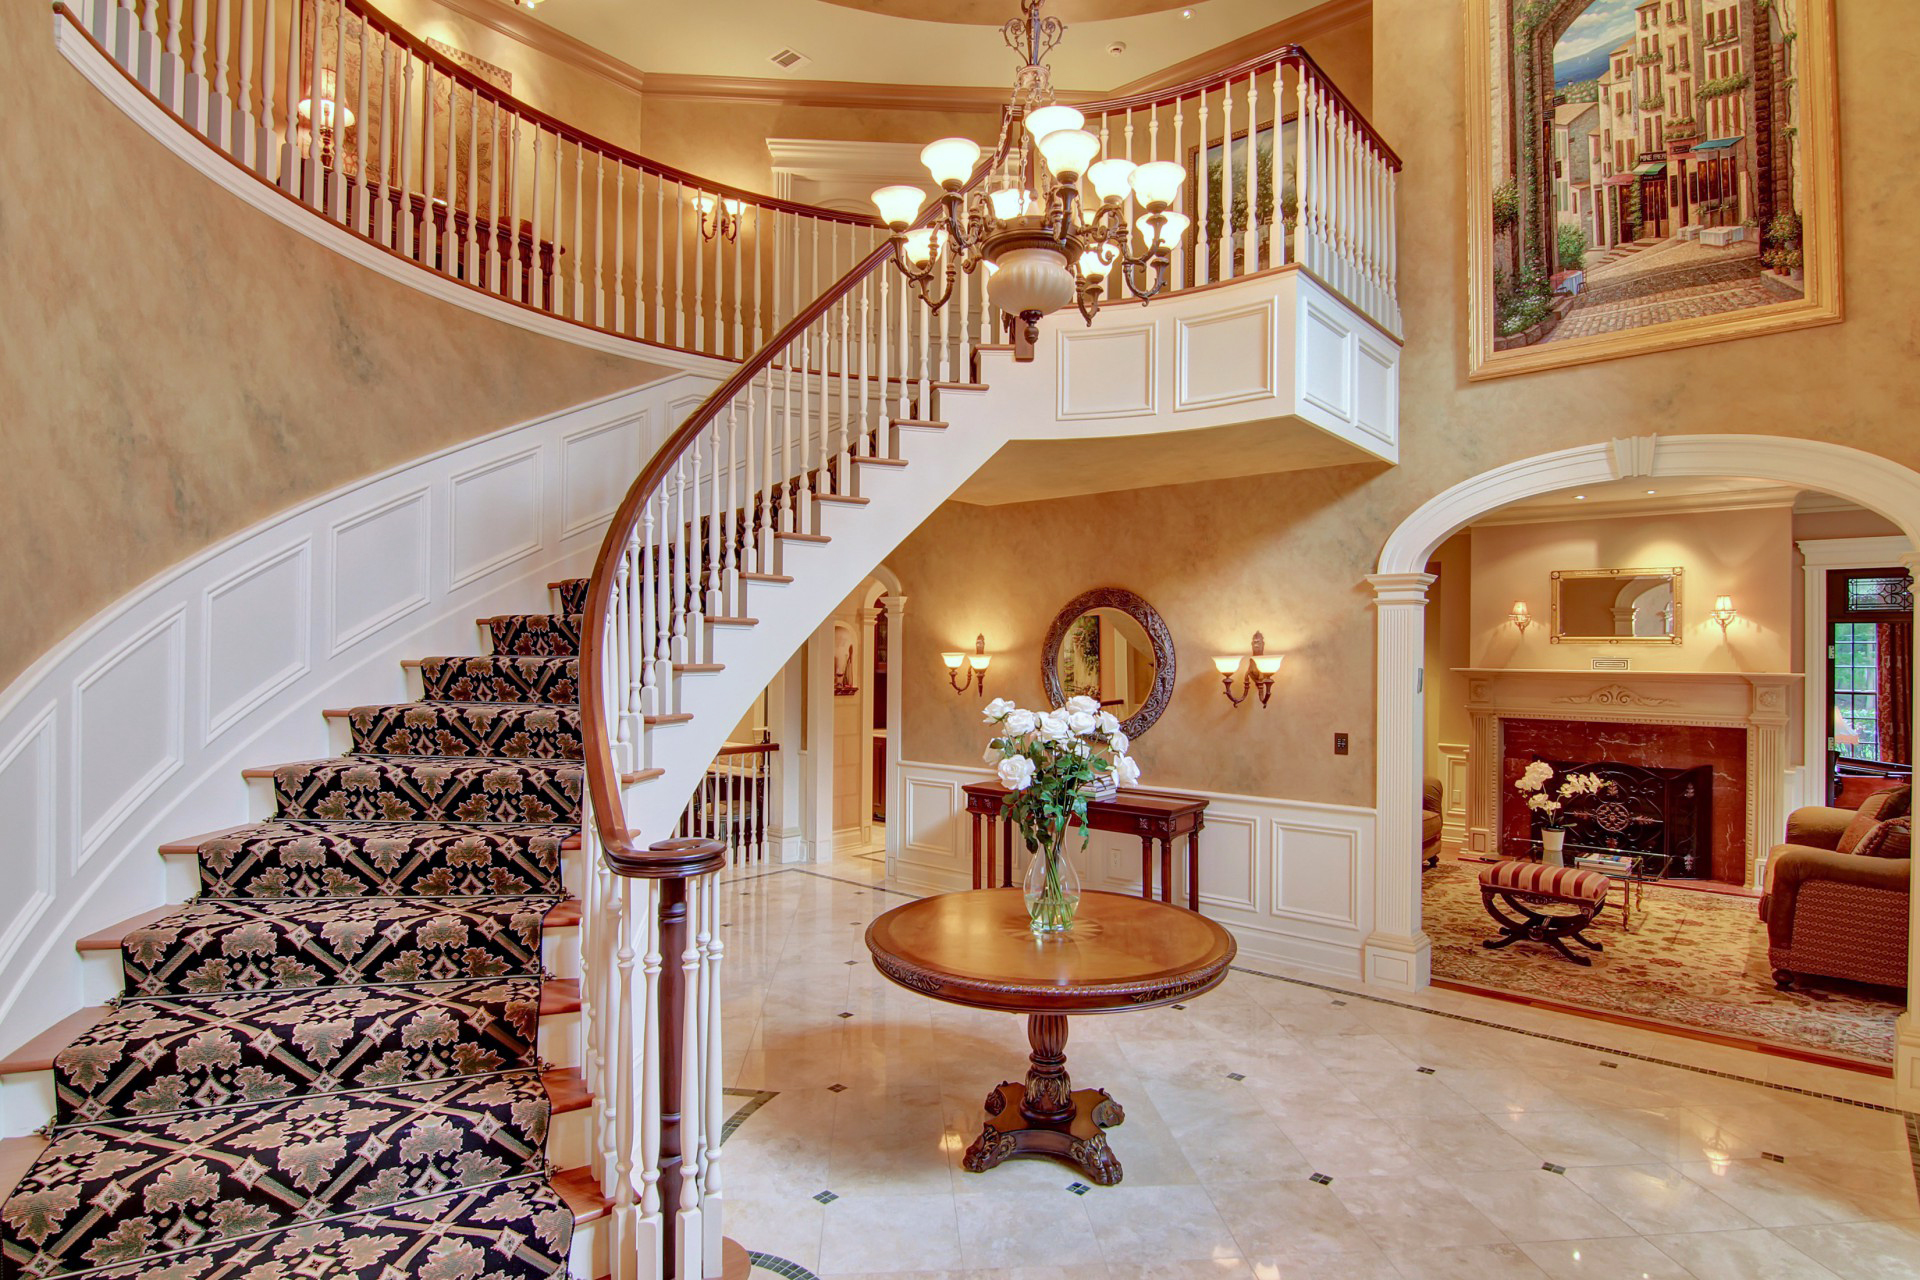 35 Tall Pine Lane Entry Hall